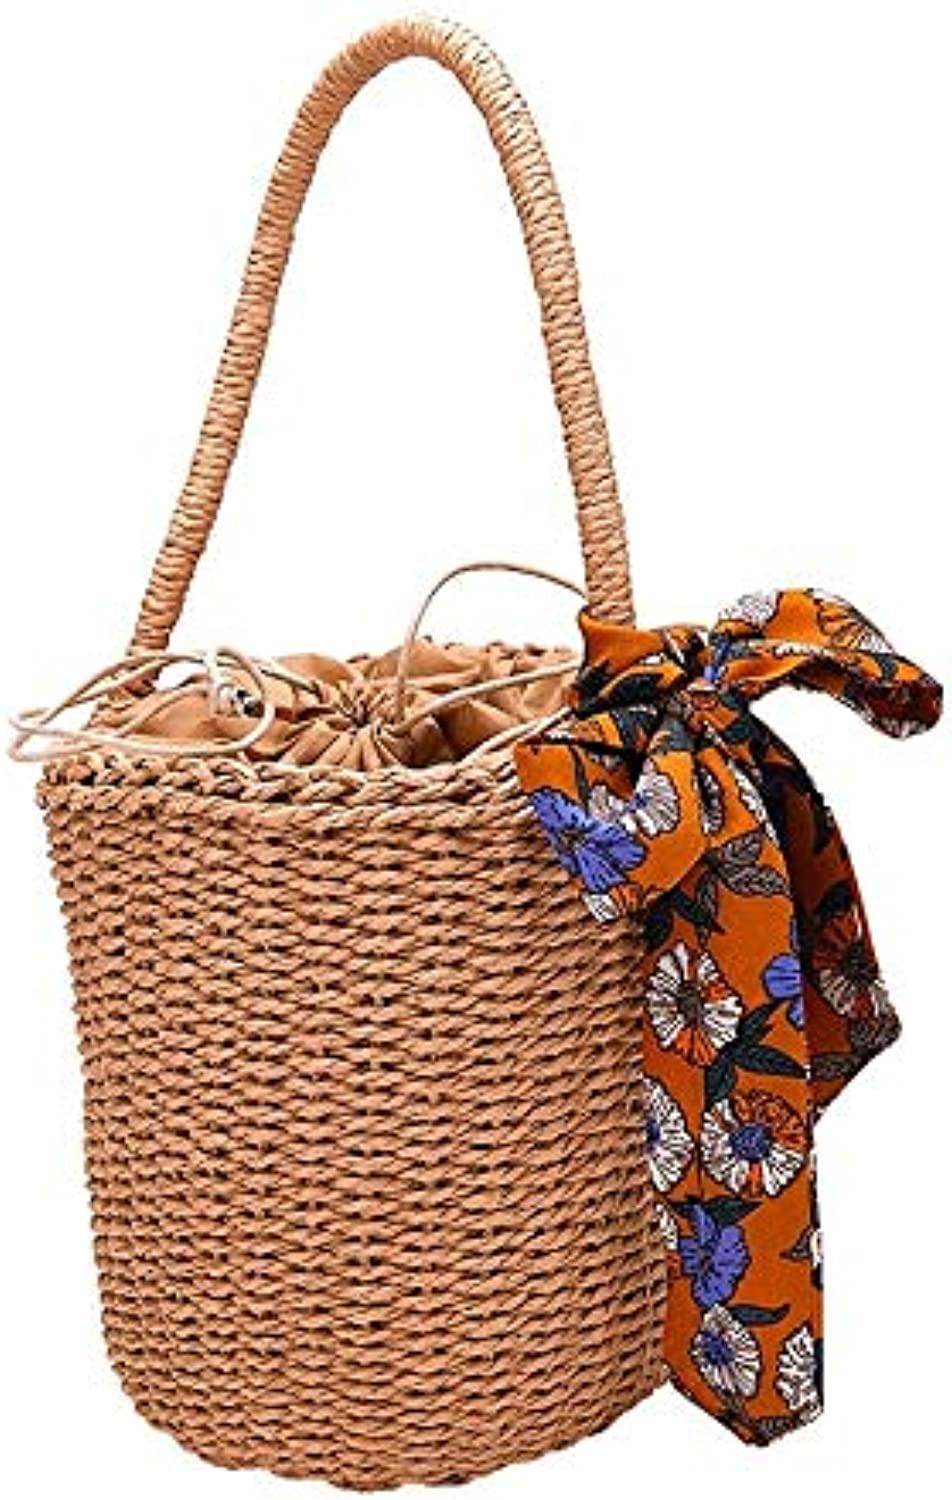 ESTHER Straw Handbags 2019 Women Handbags Handmade Round Handle Bag Drawstring Ladies